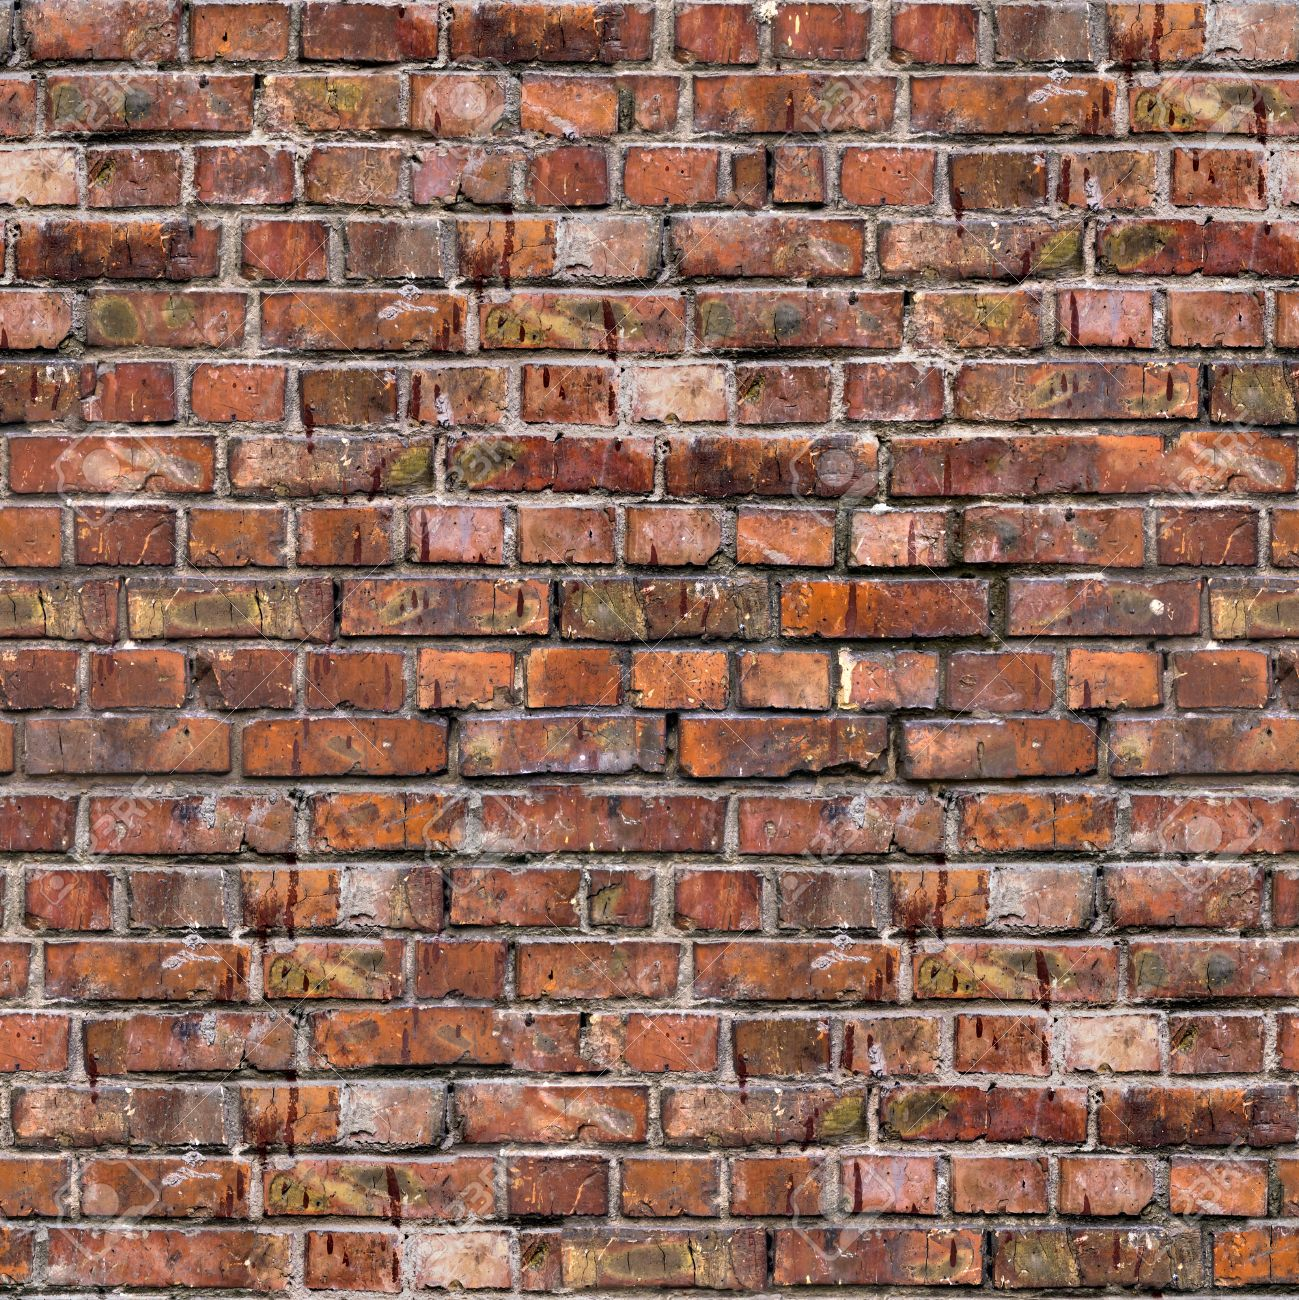 Brick Wall Old Dark Red Bricks With Cracks And Dirt Spots Seamless Tileable Texture Stock Photo